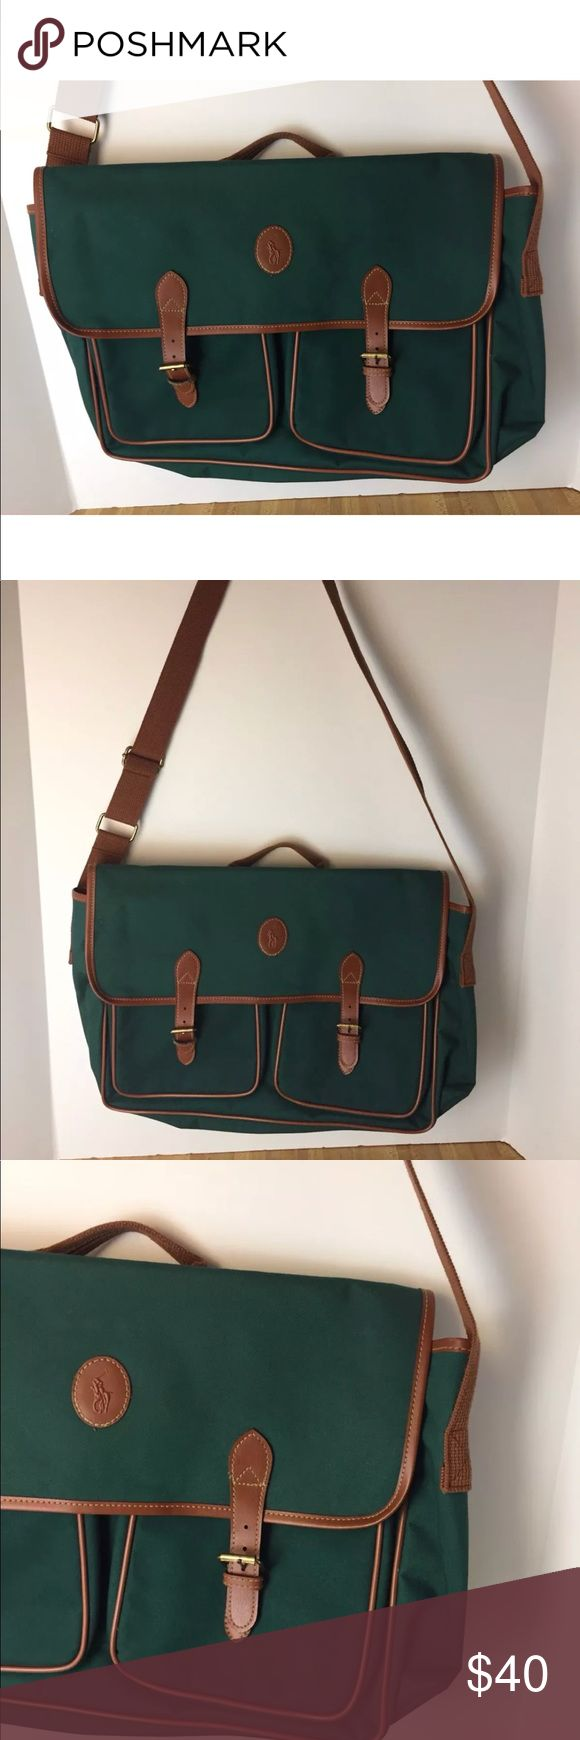 Polo Ralph Lauren Vintage Carry Bag Travel A4 Vintage POLO RALPH LAUREN Green Canvas Travel Bag Satchel   Great briefcase buckle style laptop carry bag  EUC   Immediate shipping upon payment Ralph Lauren Bags Laptop Bags